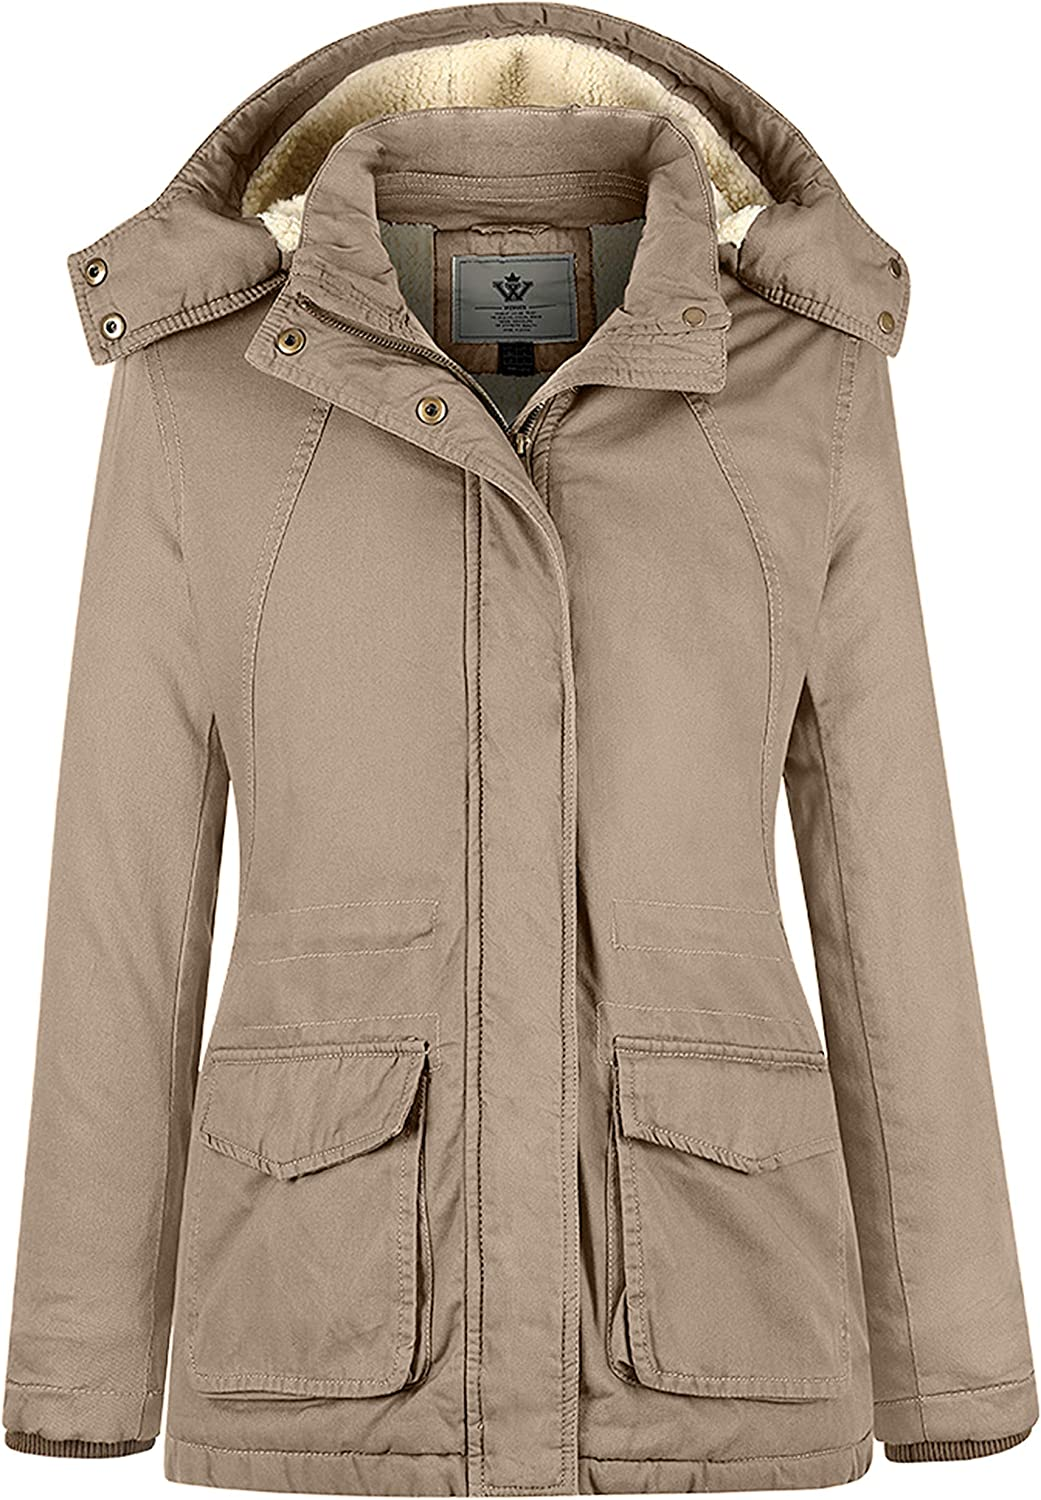 WenVen Women's Winter Thickened Warm Sherpa Lined Hooded Cotton Jacket